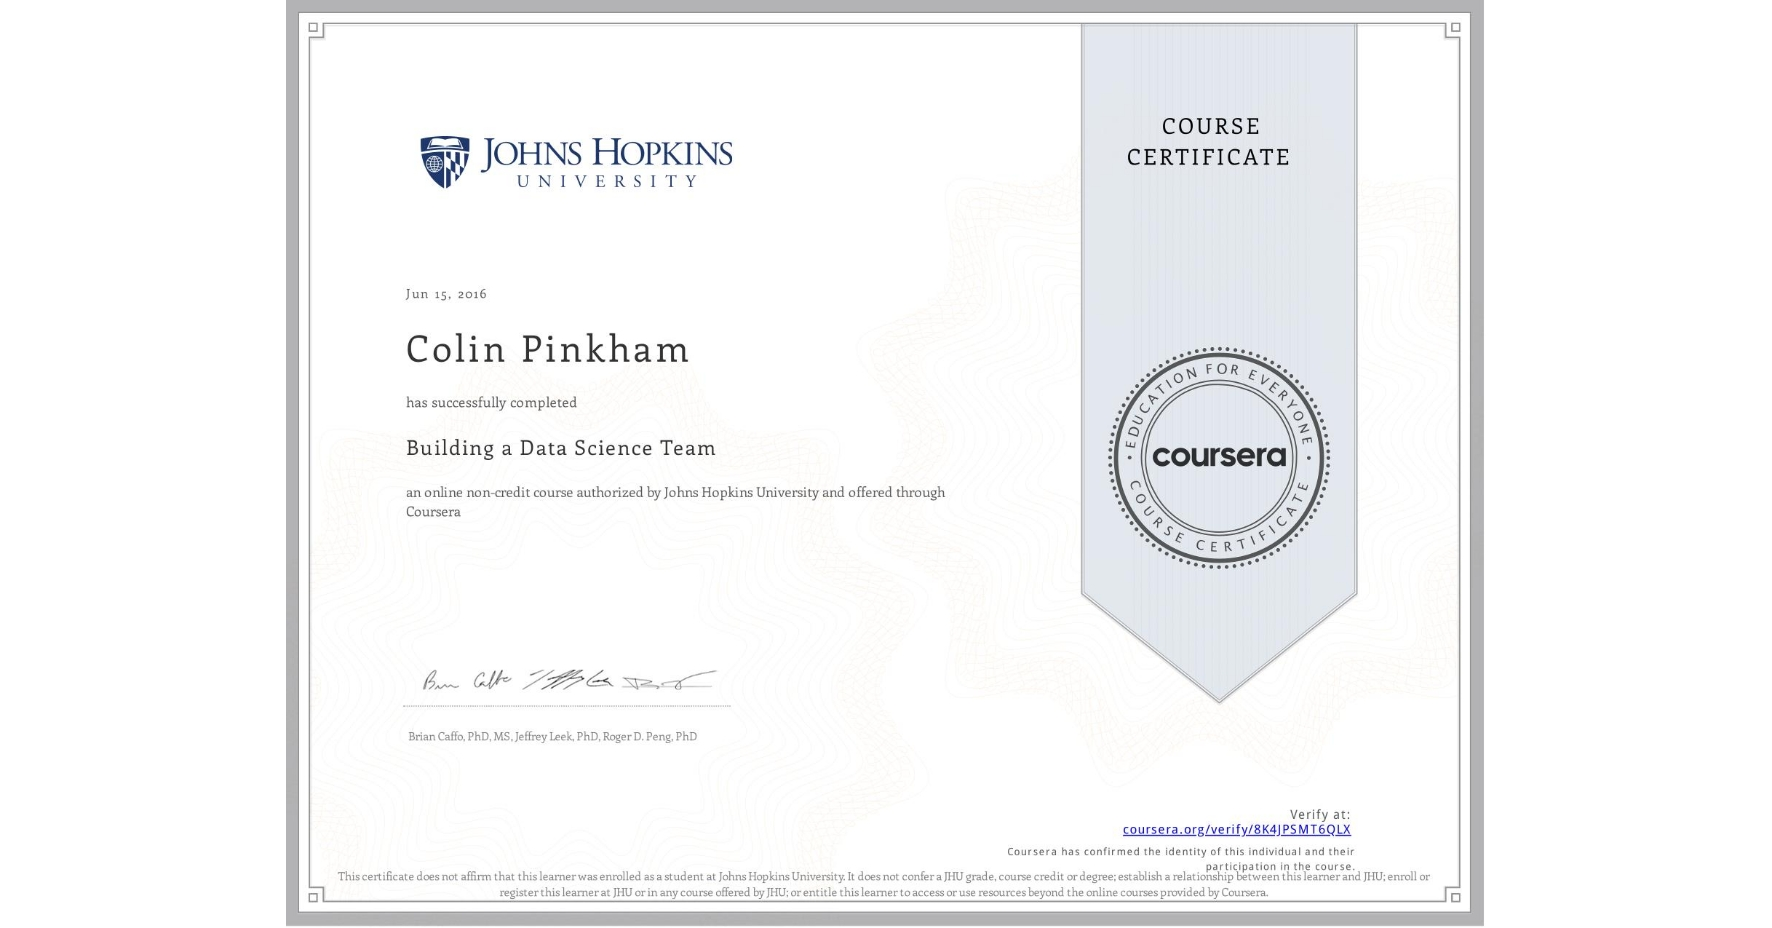 View certificate for Colin Pinkham, Building a Data Science Team, an online non-credit course authorized by Johns Hopkins University and offered through Coursera